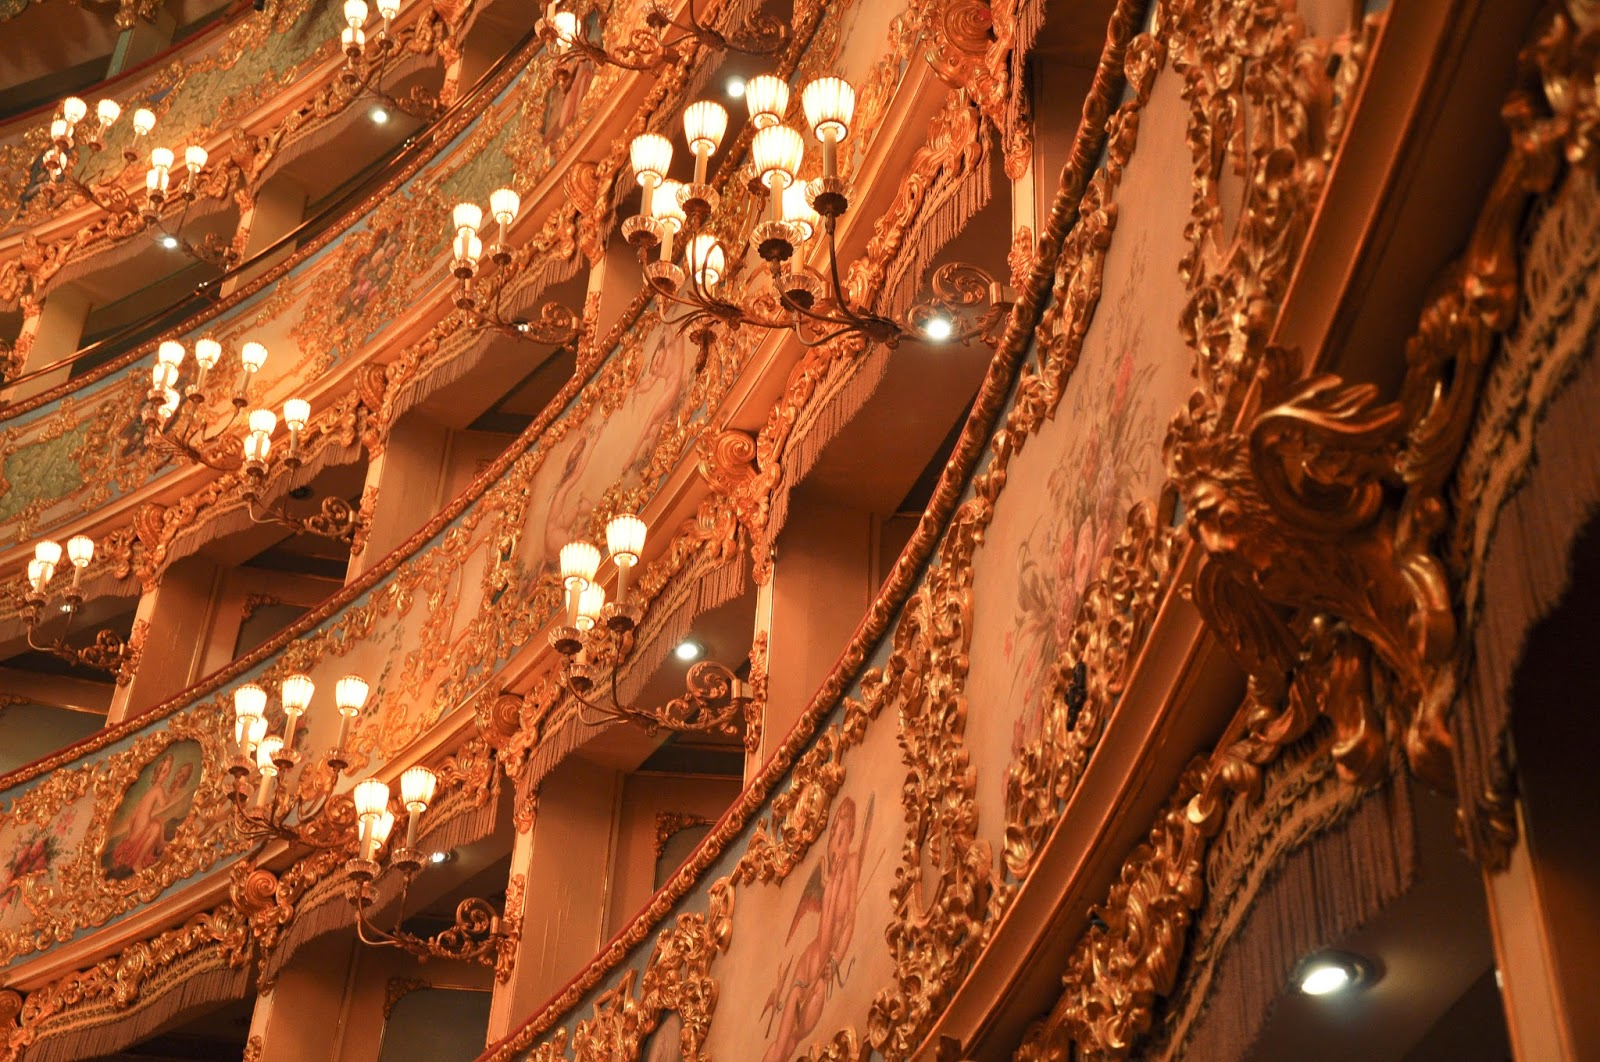 A close up of the ornamenation of the boxes, La Fenice, Venice, Italy